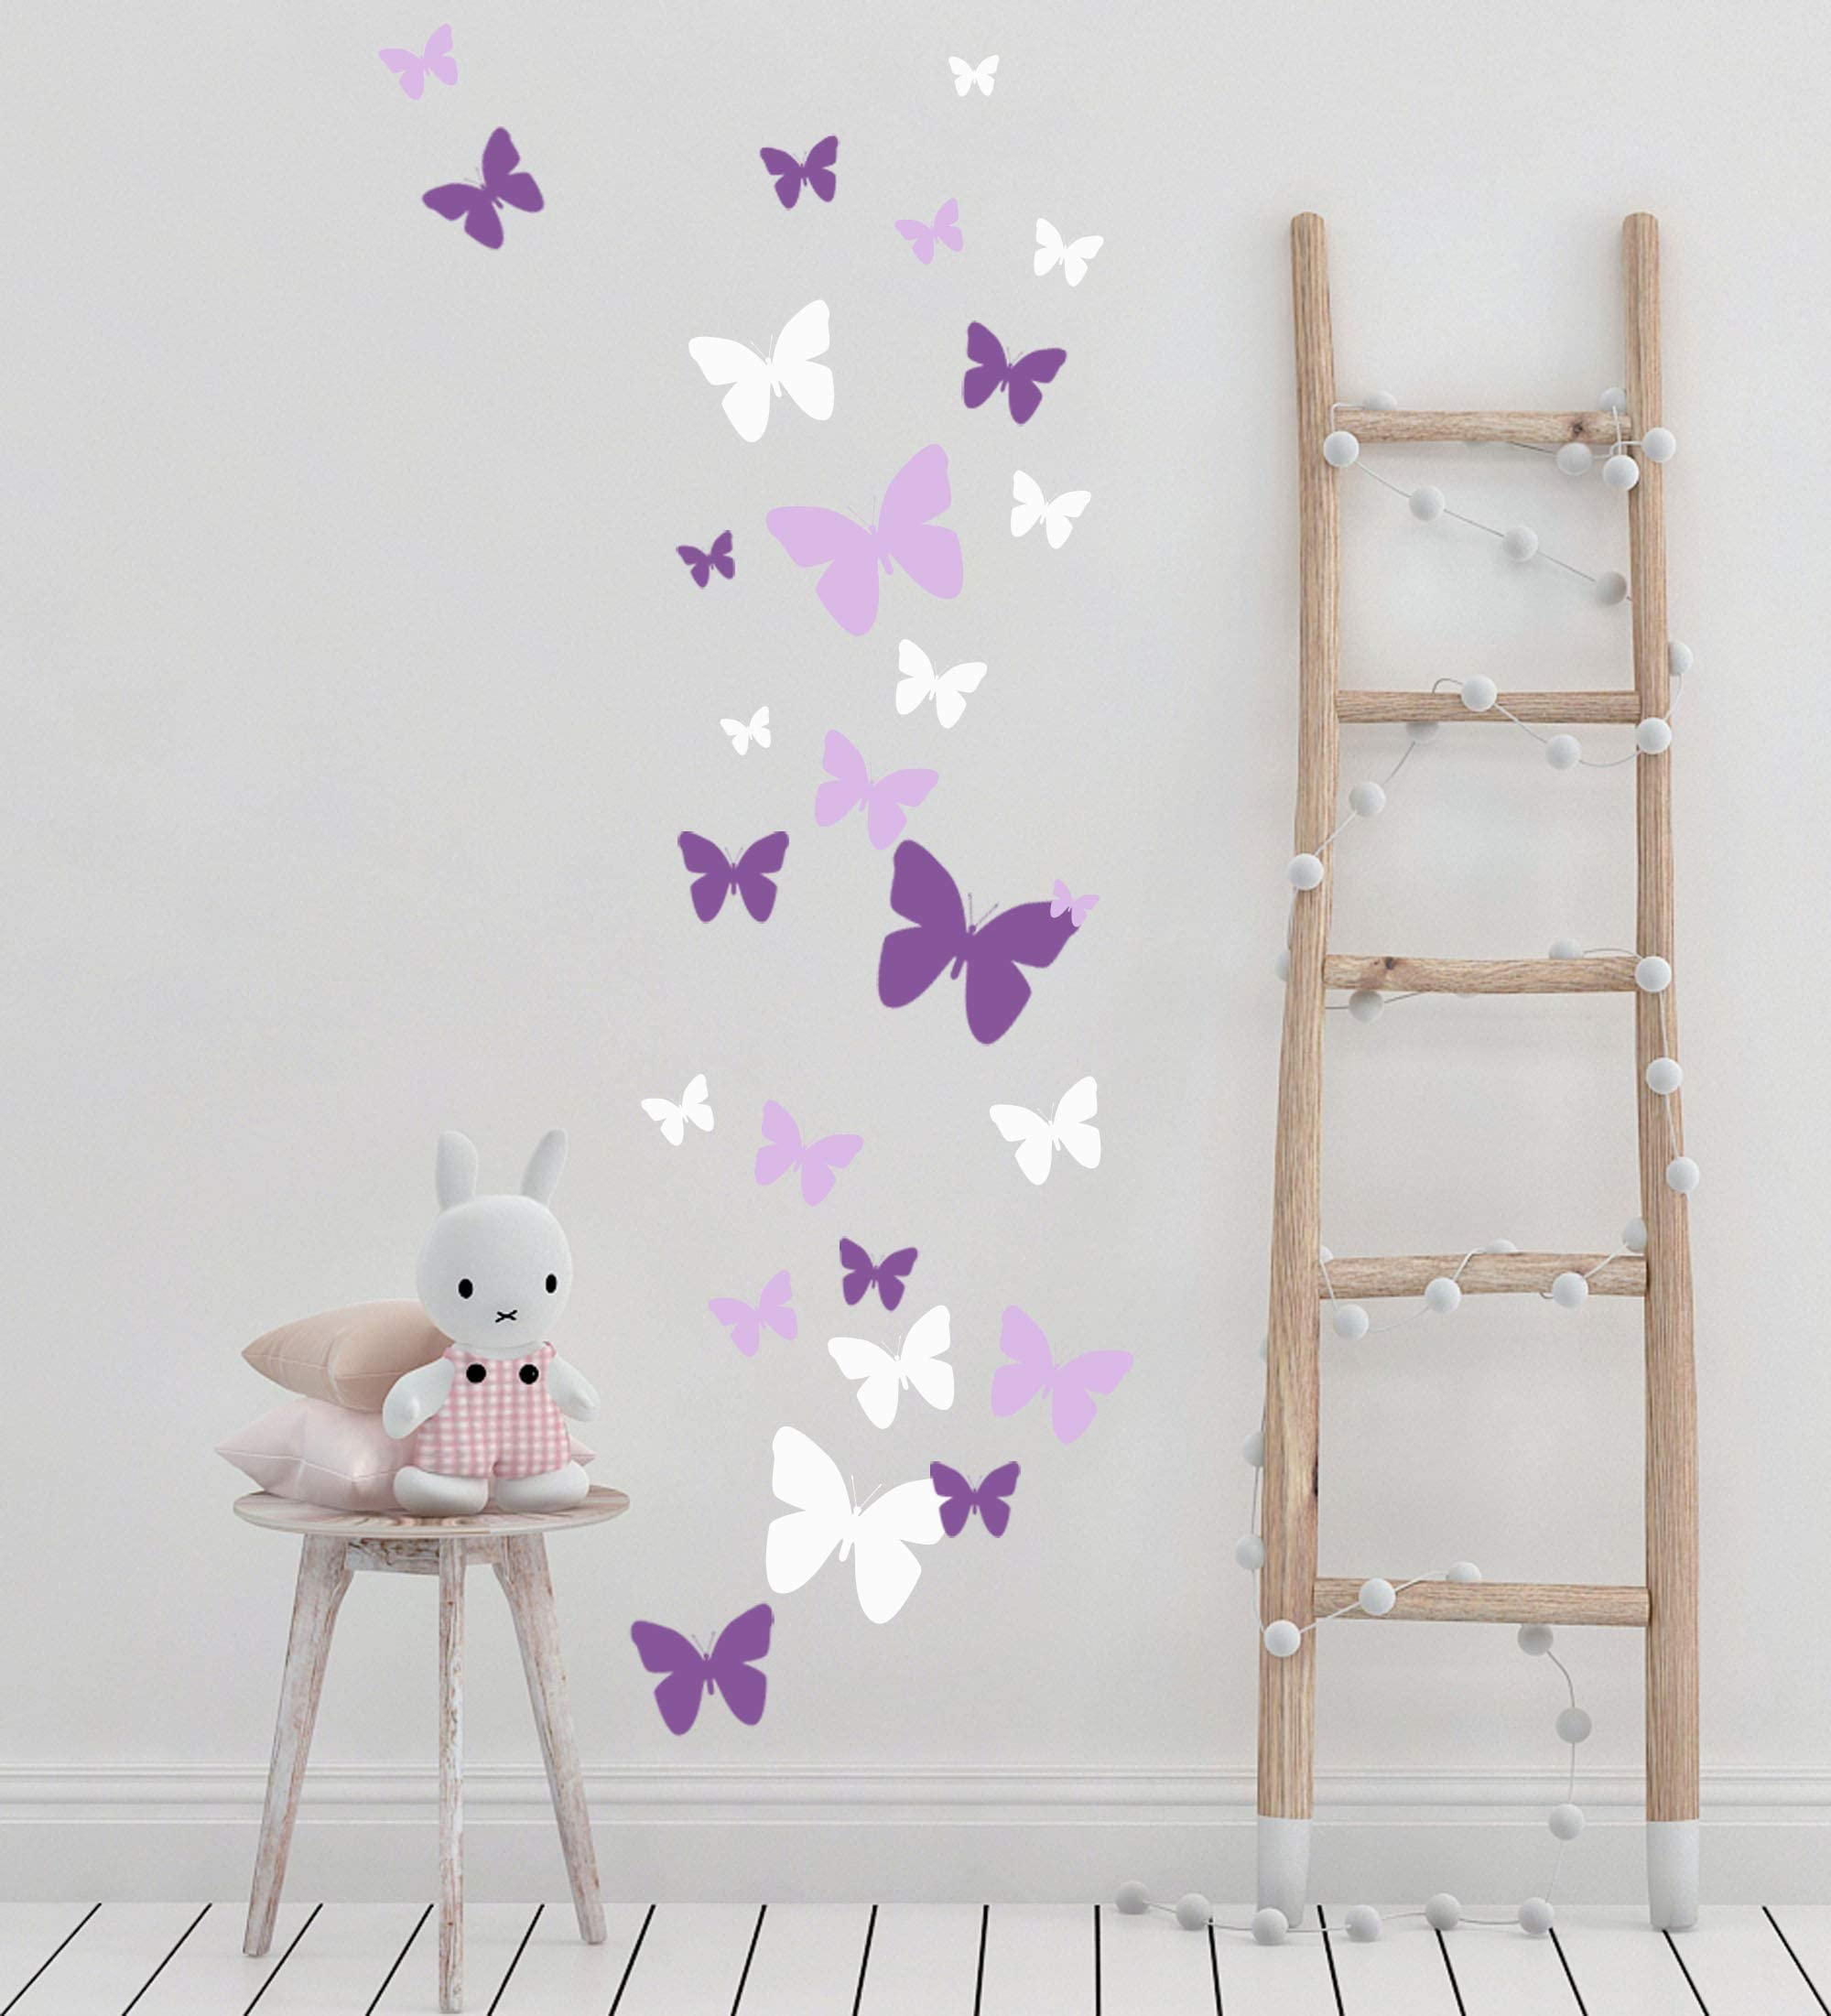 Butterfly Wall Decals Beautiful Girls Stickers Art Vinyl For Bedroom Peel And Stick Kids Room Decor Nursery Toddler Teen Decorations Playroom Birthday Gift Lilic Lavender White